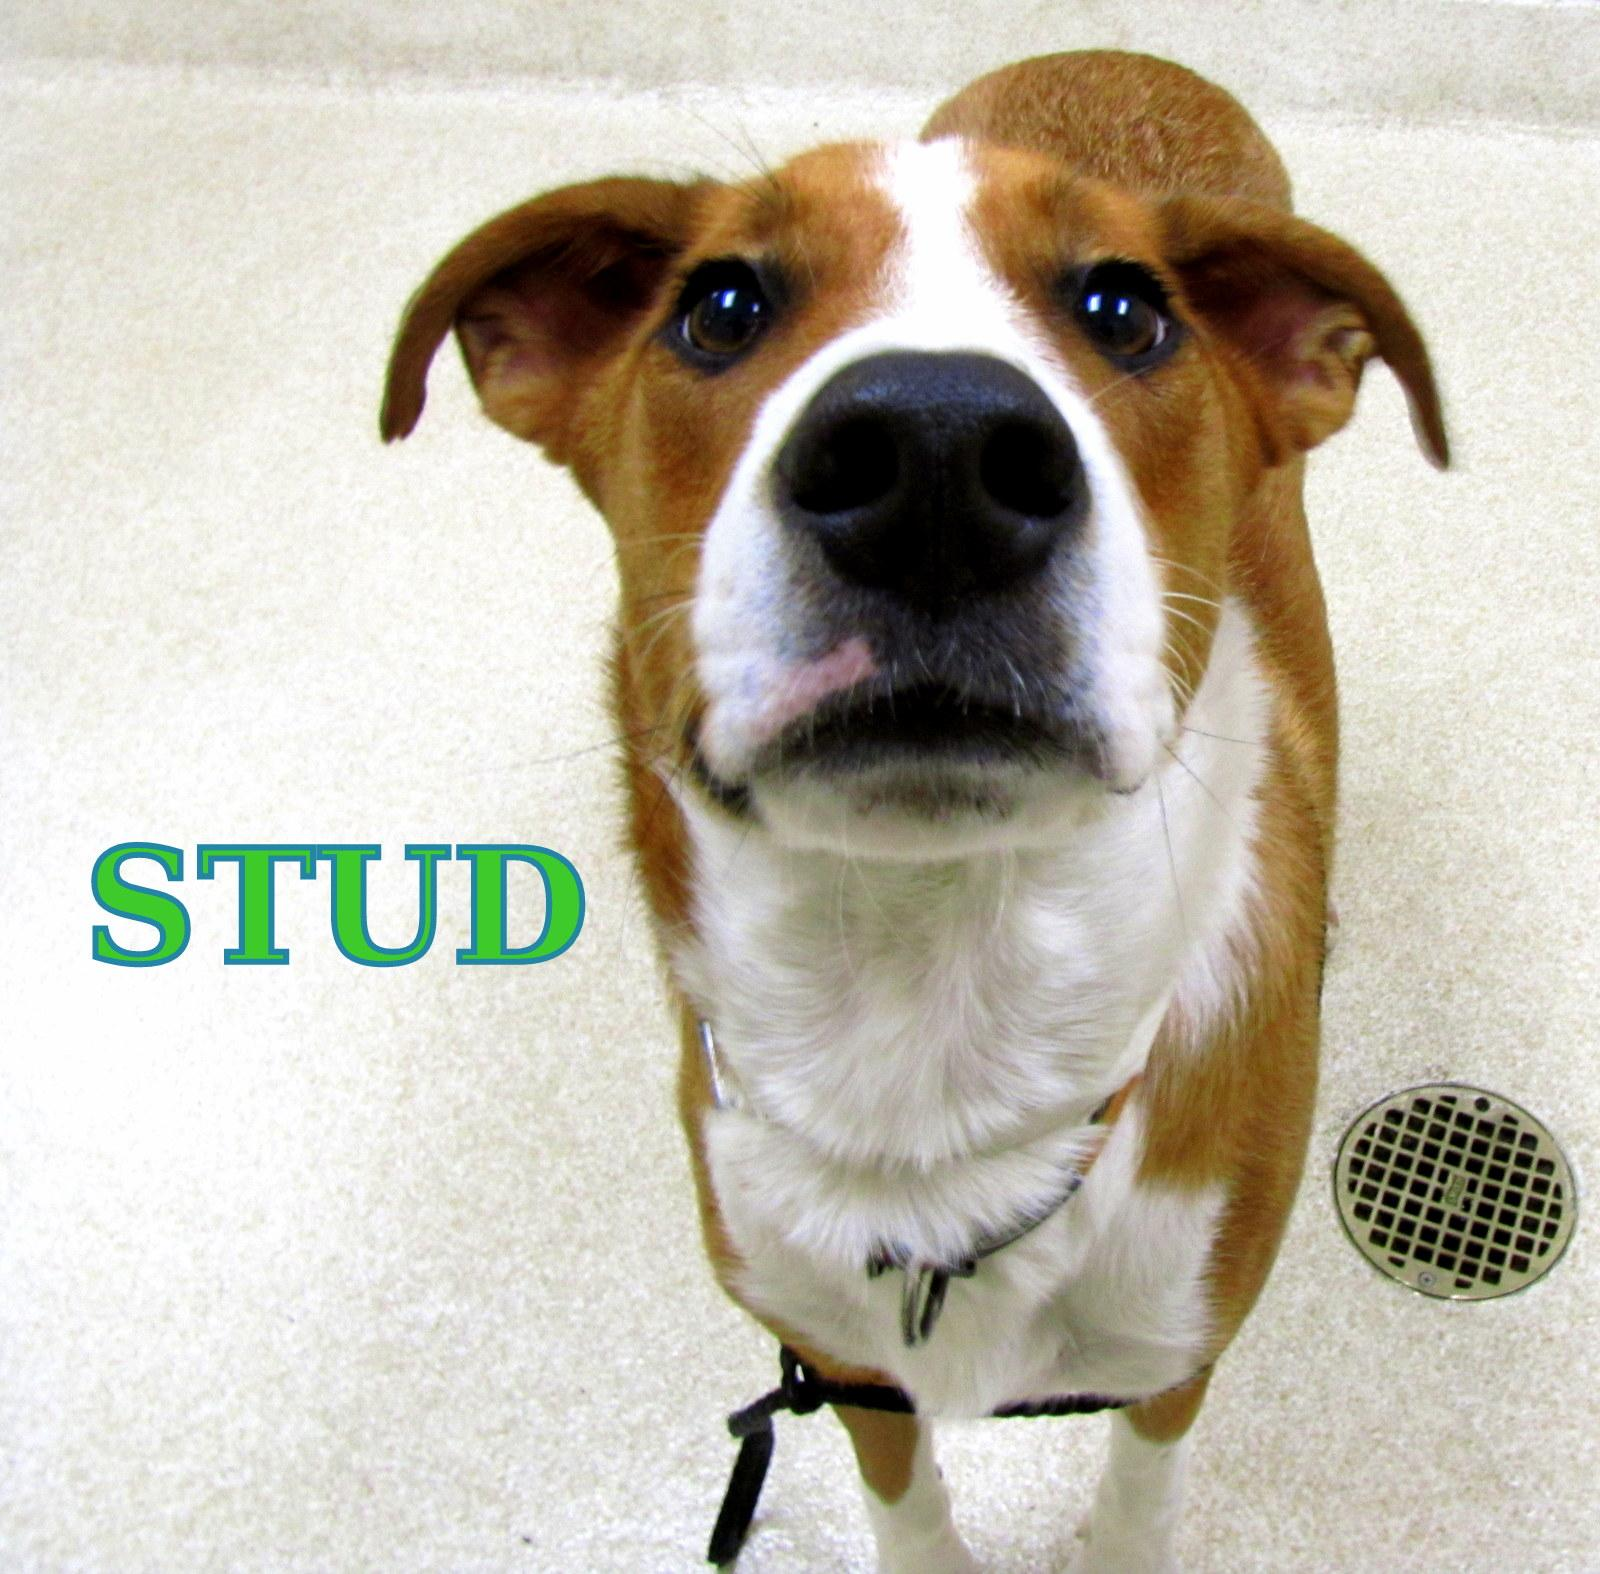 Stud-has been ADOPTED!!!